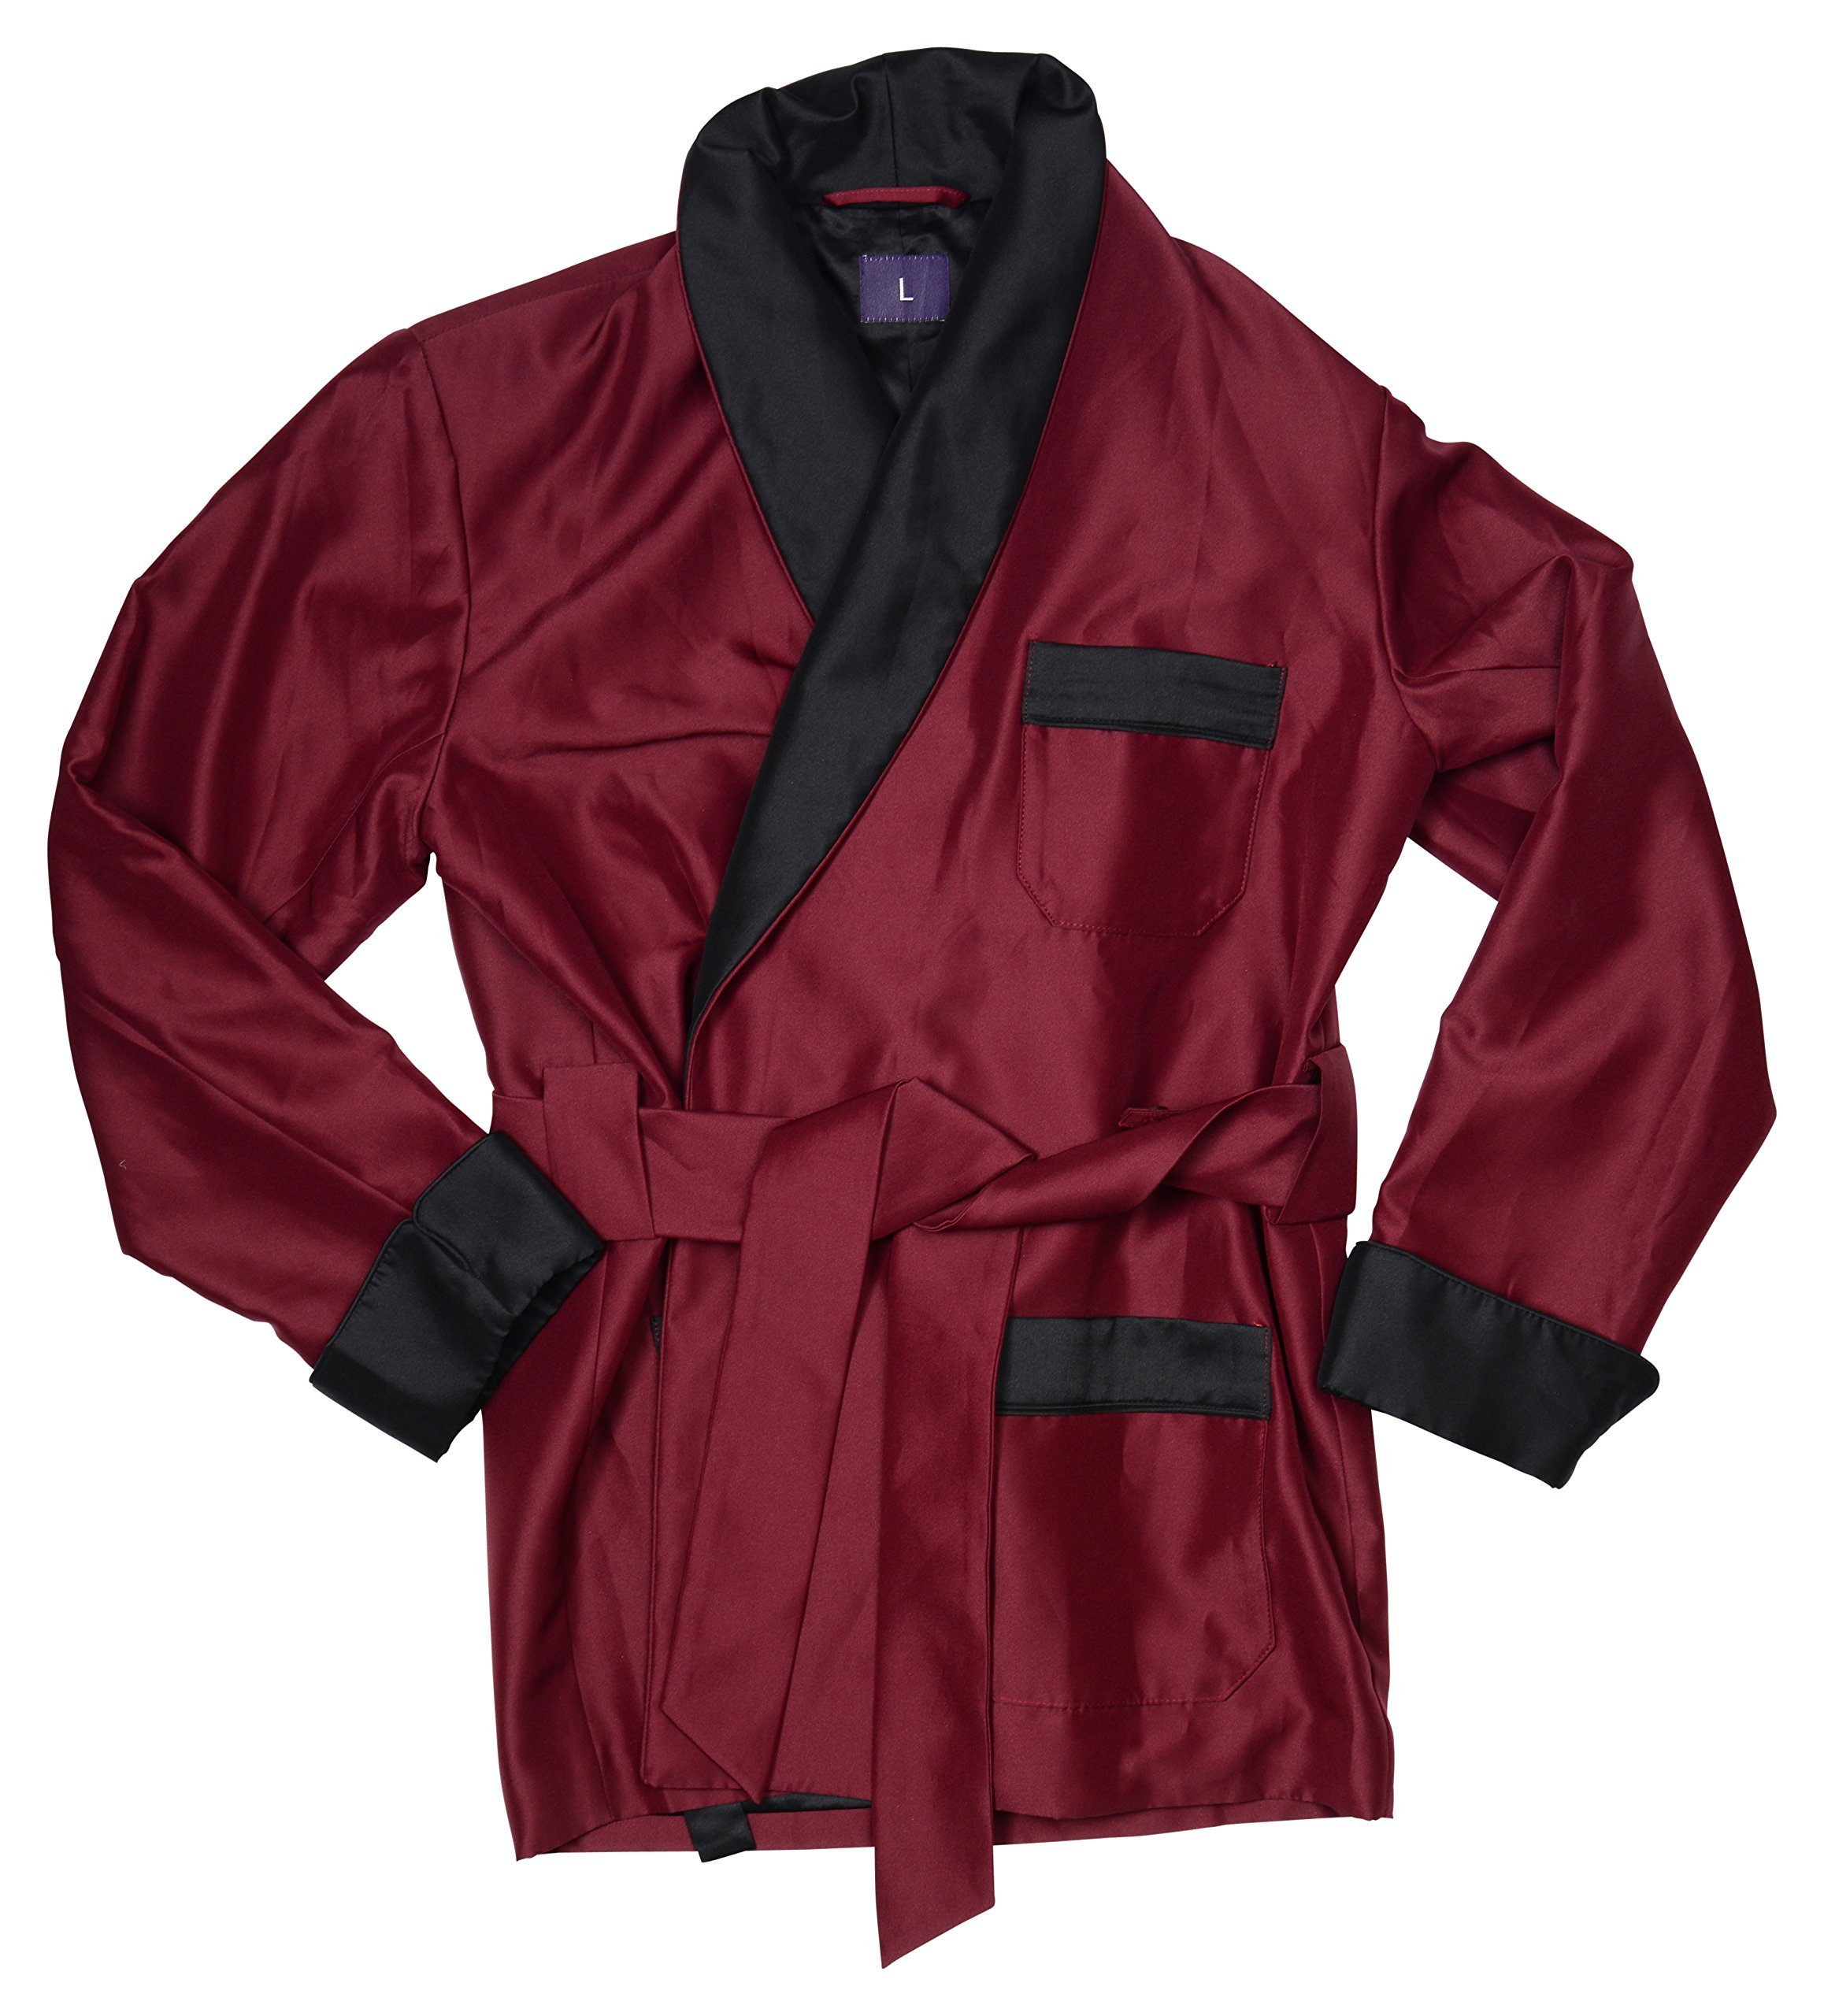 Men's Smoking Jacket Perry Burgundy by Duke & Digham